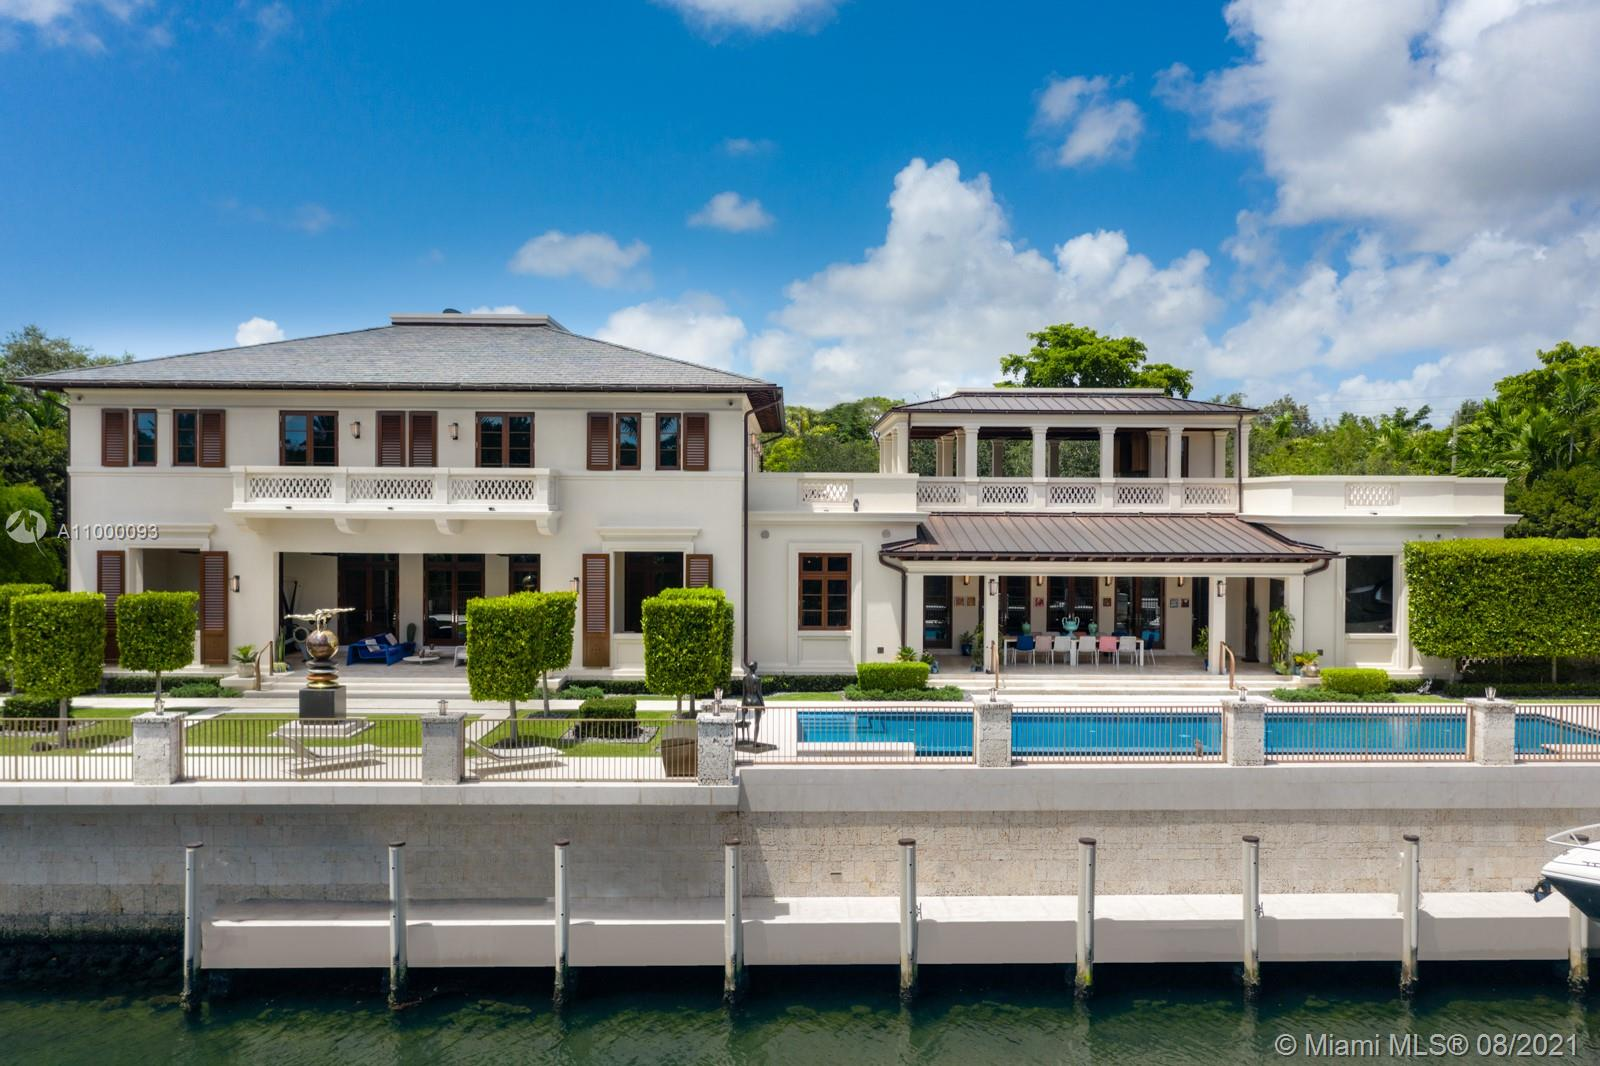 Inspiration meets sophistication. Custom built for the current owners with top of the line materials and exquisite finish.  A remarkable 200' waterfront, easy access to Biscayne Bay. Impressive marble pillars greet you as you enter the home. Outdoor spaces that blend organically with the Gallery walls, cohesive wall-to-wall marble floors, tray ceilings w/stunning gold and silver brushed metallic, elegant venetian plaster walls. Immaculate chef's kitchen w/ emerald quartz countertop & waterfall island. 2 elevators & service quarters. Bay breezes from the covered terraces & the second level gazebo with entertaining in mind. Glass mosaic tile infinity edge pool coincides with the coral rock wall that lines the waterway. Complete with a 3-car air-conditioned garage. A truly awe-inspiring home.